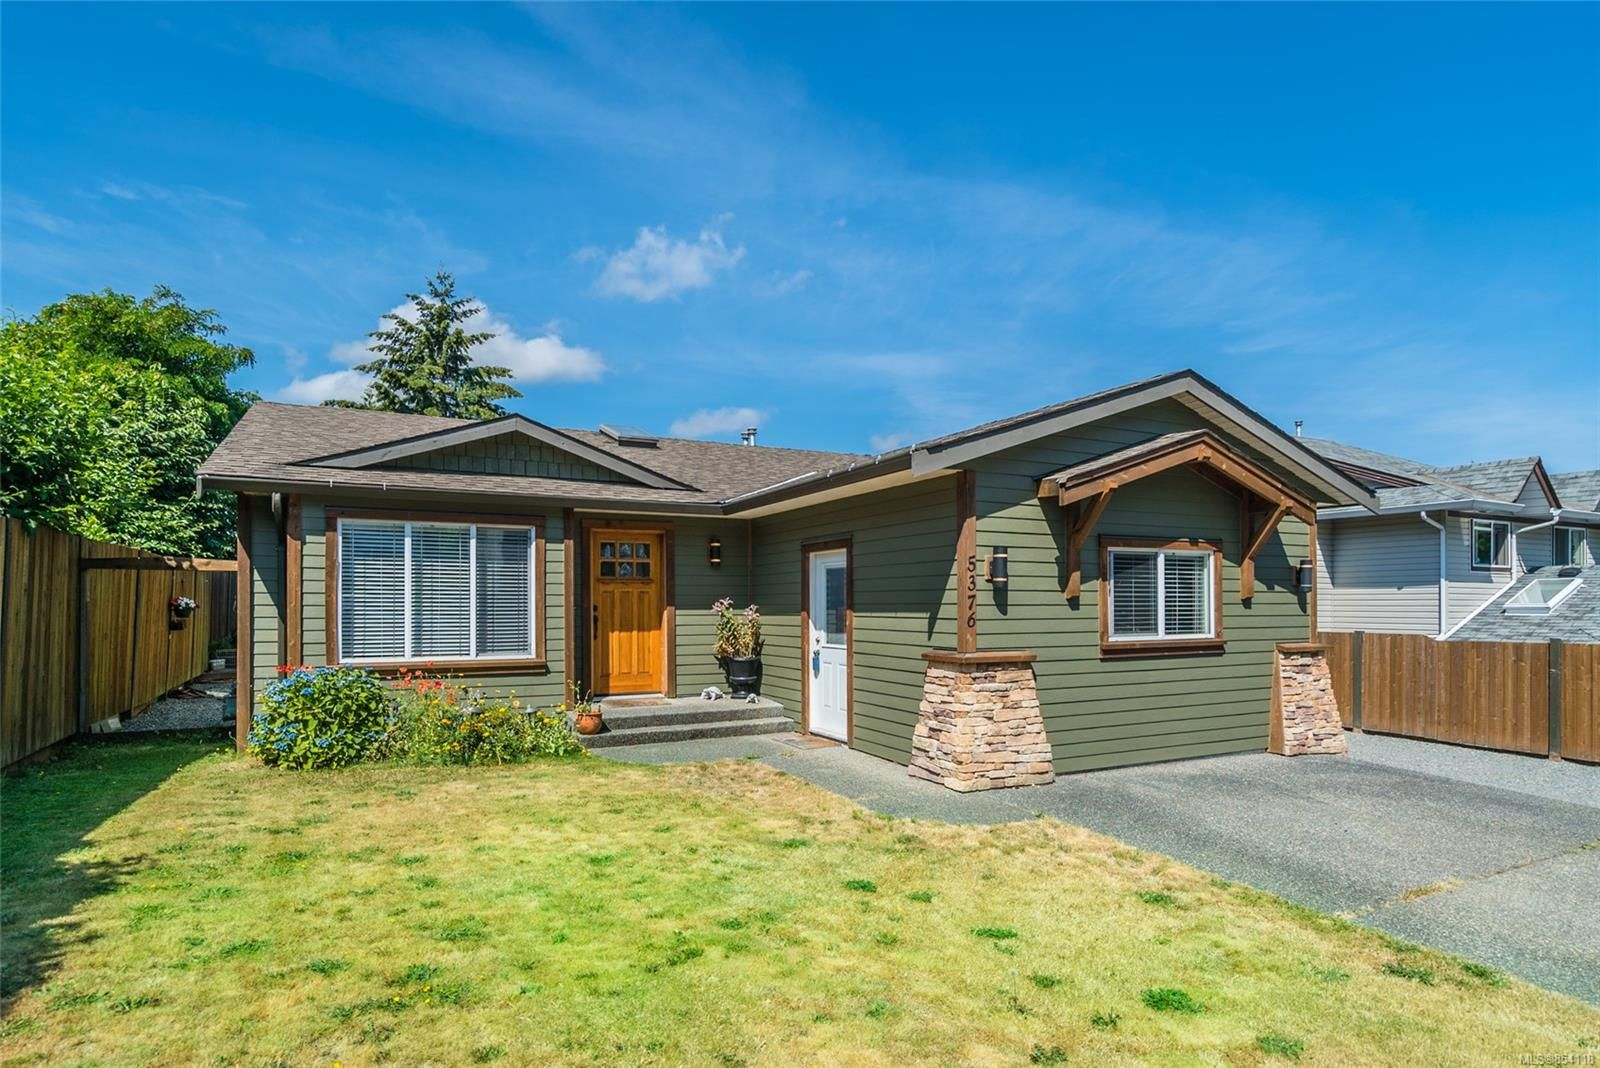 Main Photo: 5376 Colinwood Dr in : Na Pleasant Valley House for sale (Nanaimo)  : MLS®# 854118